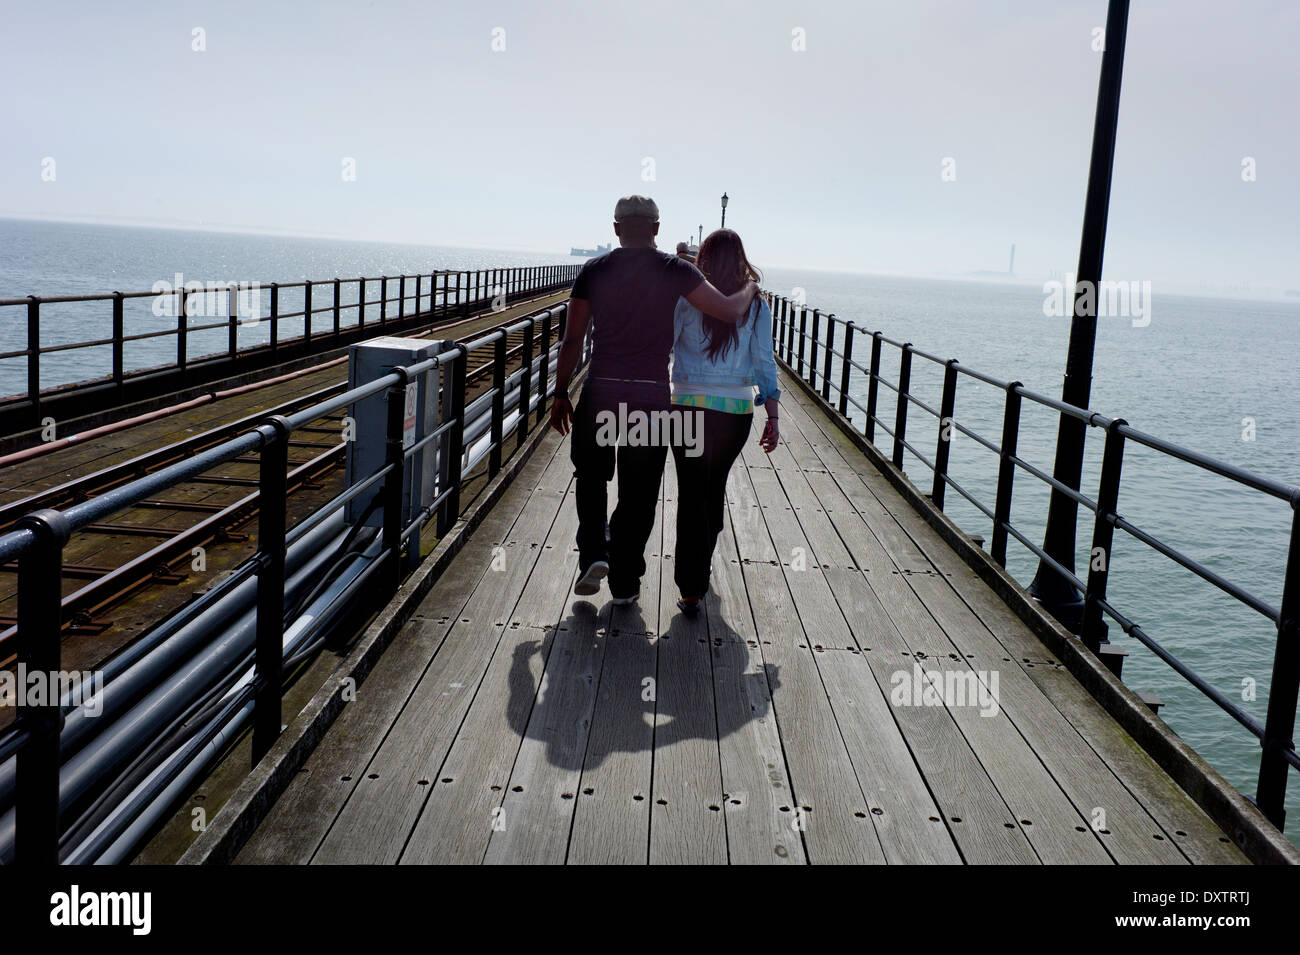 Southend-on-Sea, Essex, England. 30 March 2014 Southen Pier, the longest pleasure pier in the world. Stock Photo